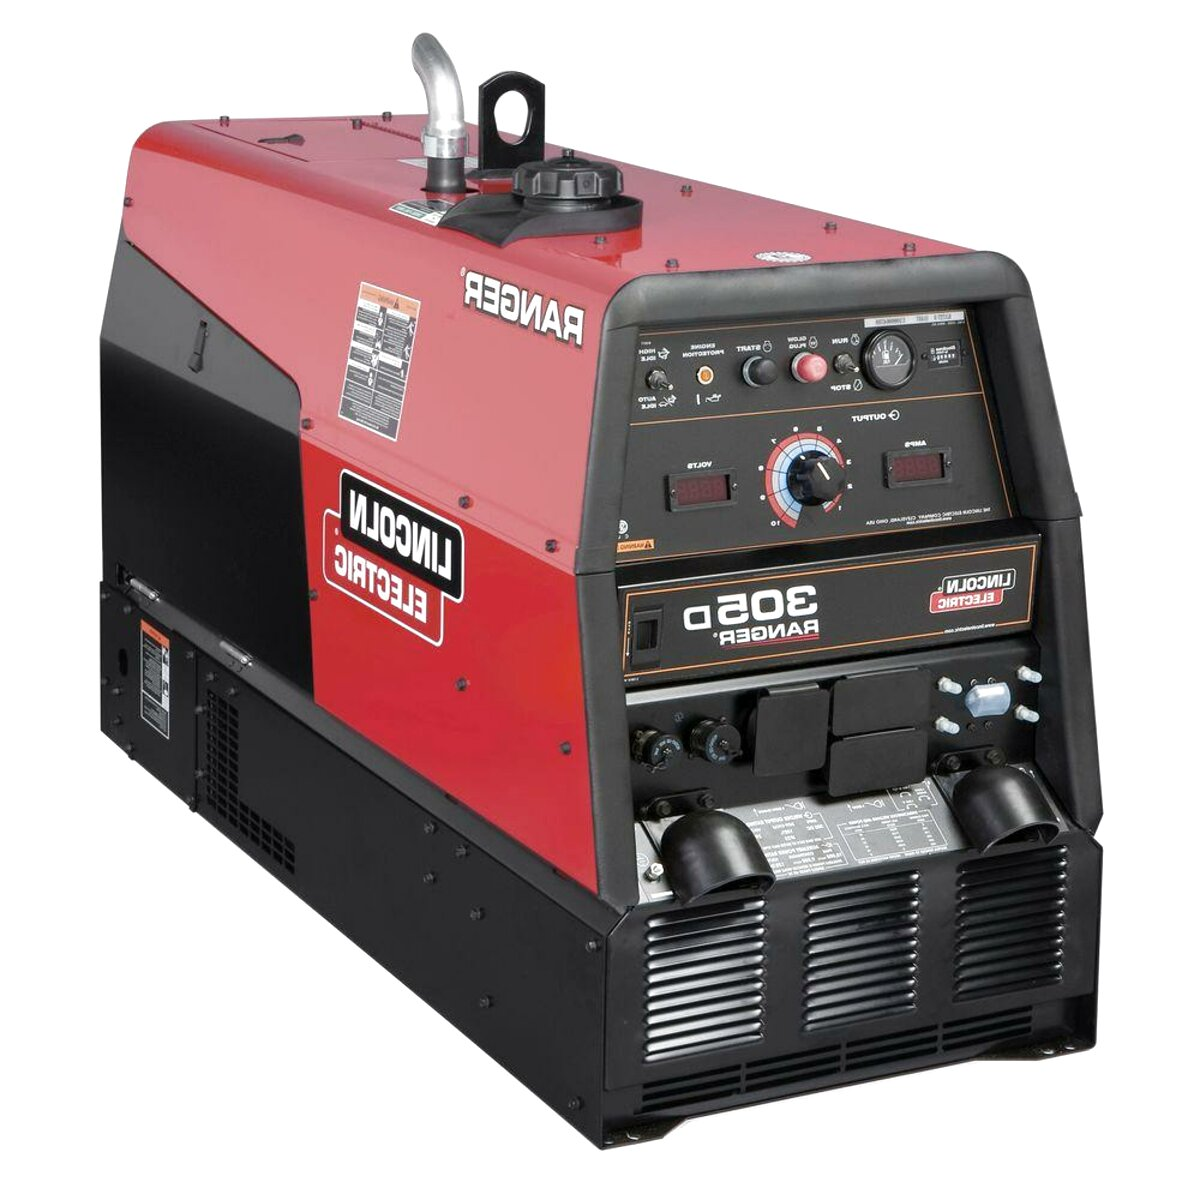 Used Welders For Sale Near Me >> Diesel Welder For Sale Only 3 Left At 60